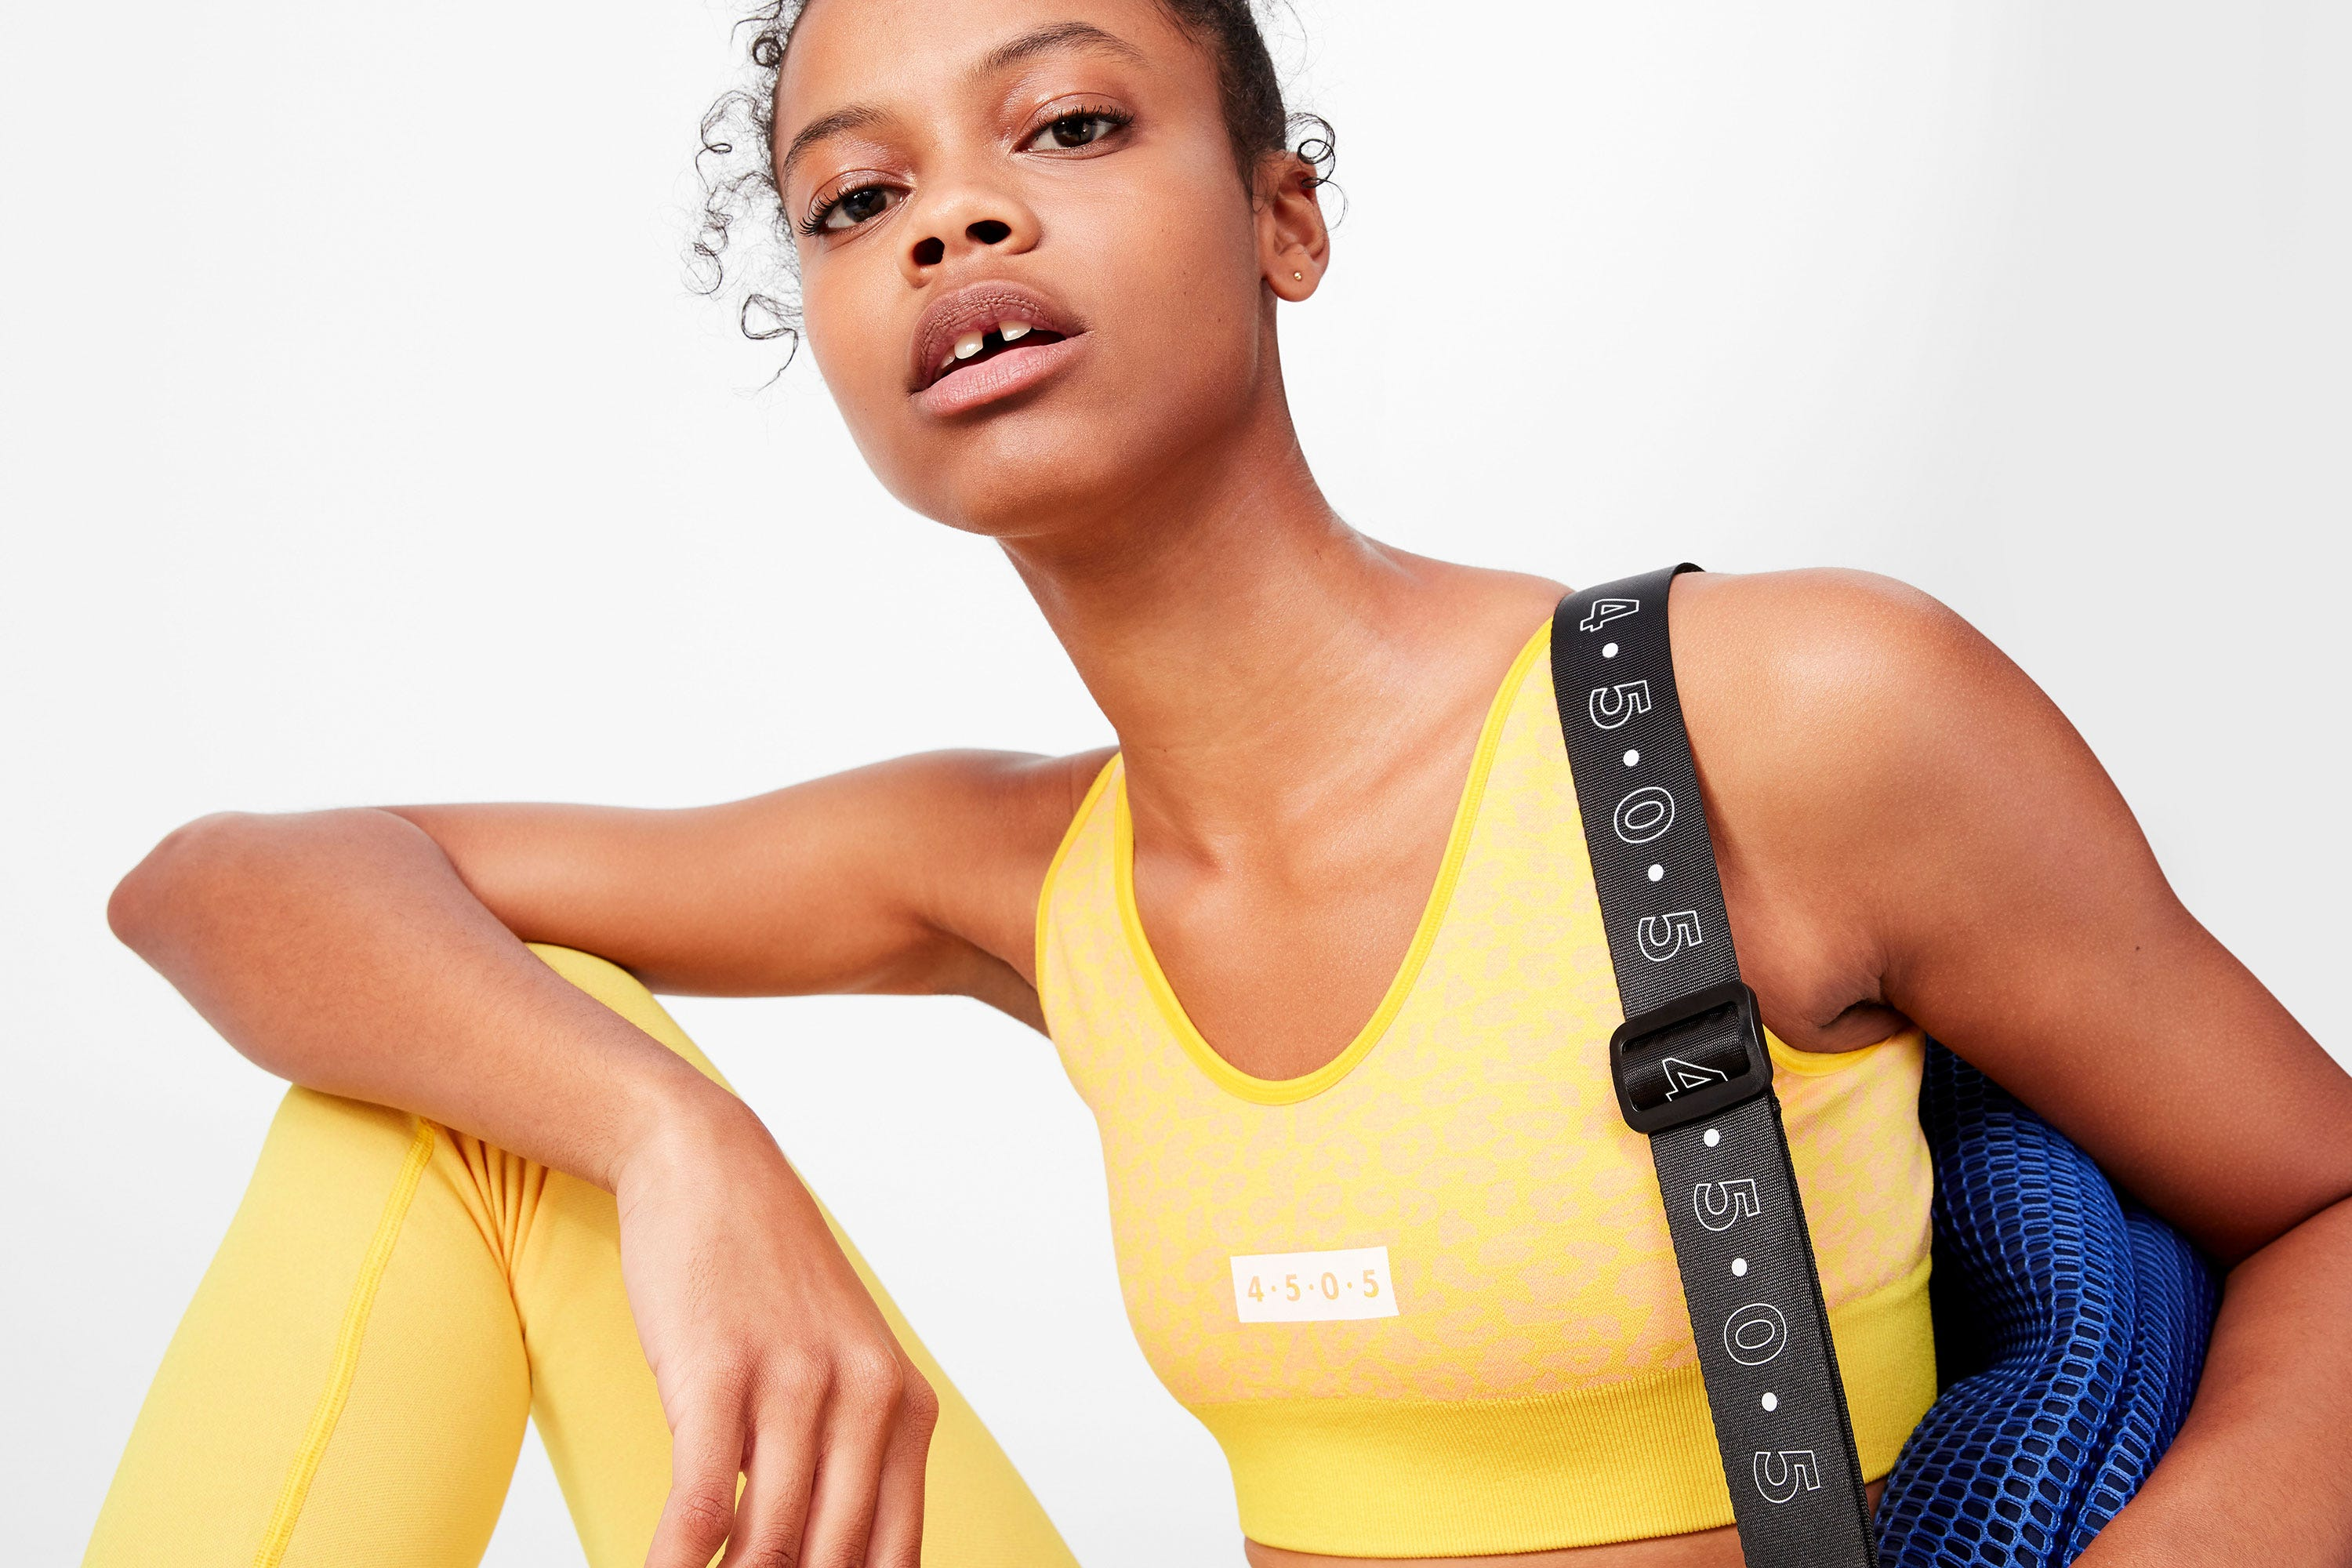 7a8a74852a6182 Asos 4505 Fitness Wear Launch